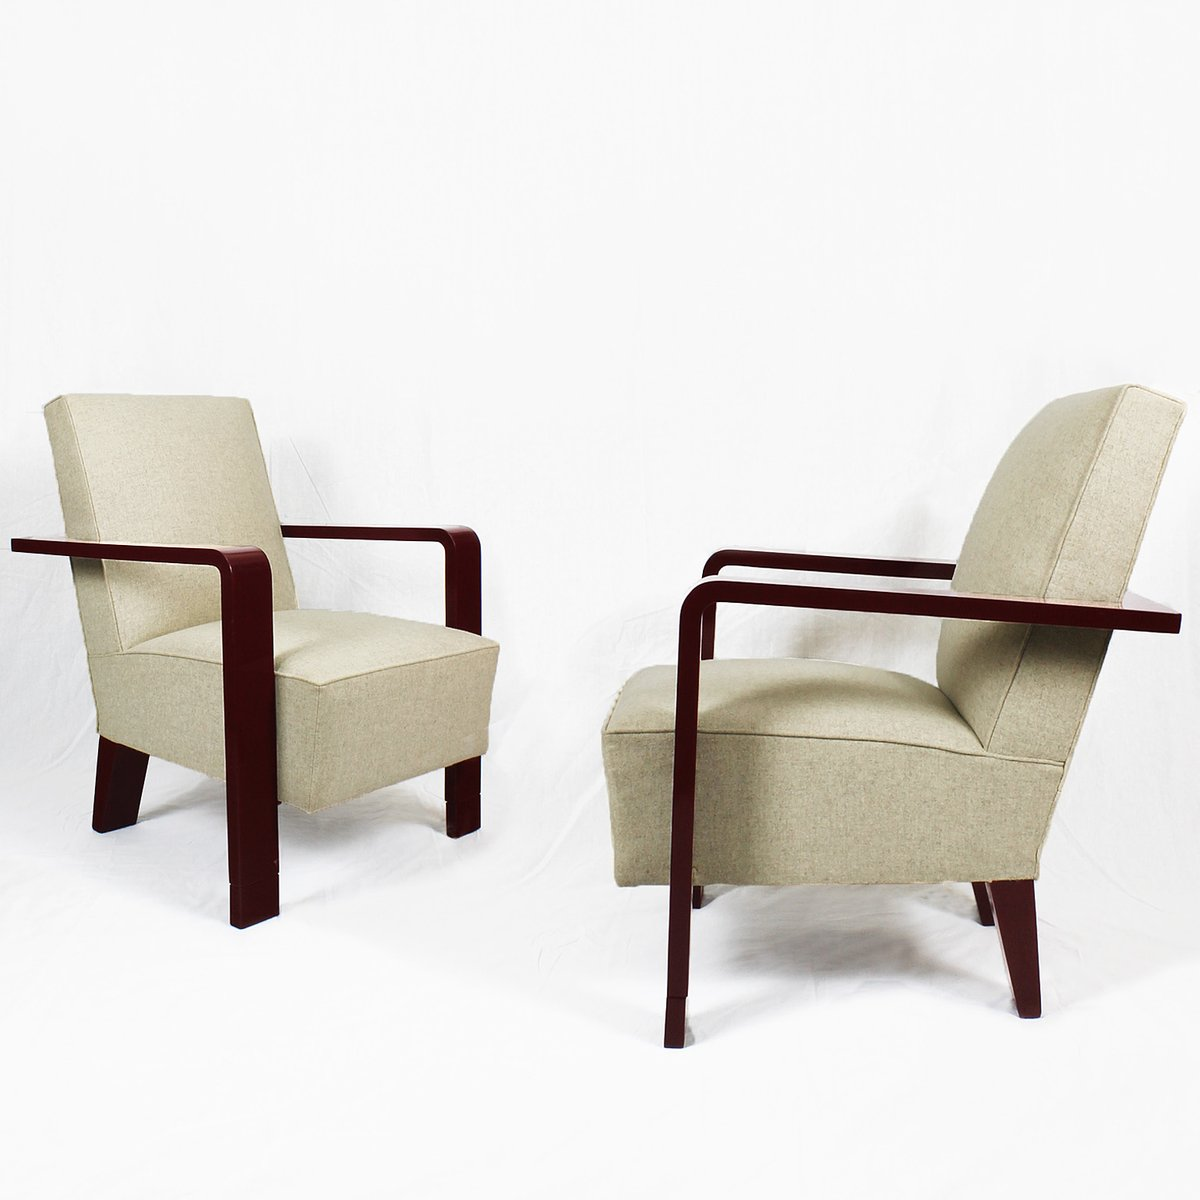 Art Deco Cubist Armchairs 1930s Set Of 2 For Sale At Pamono